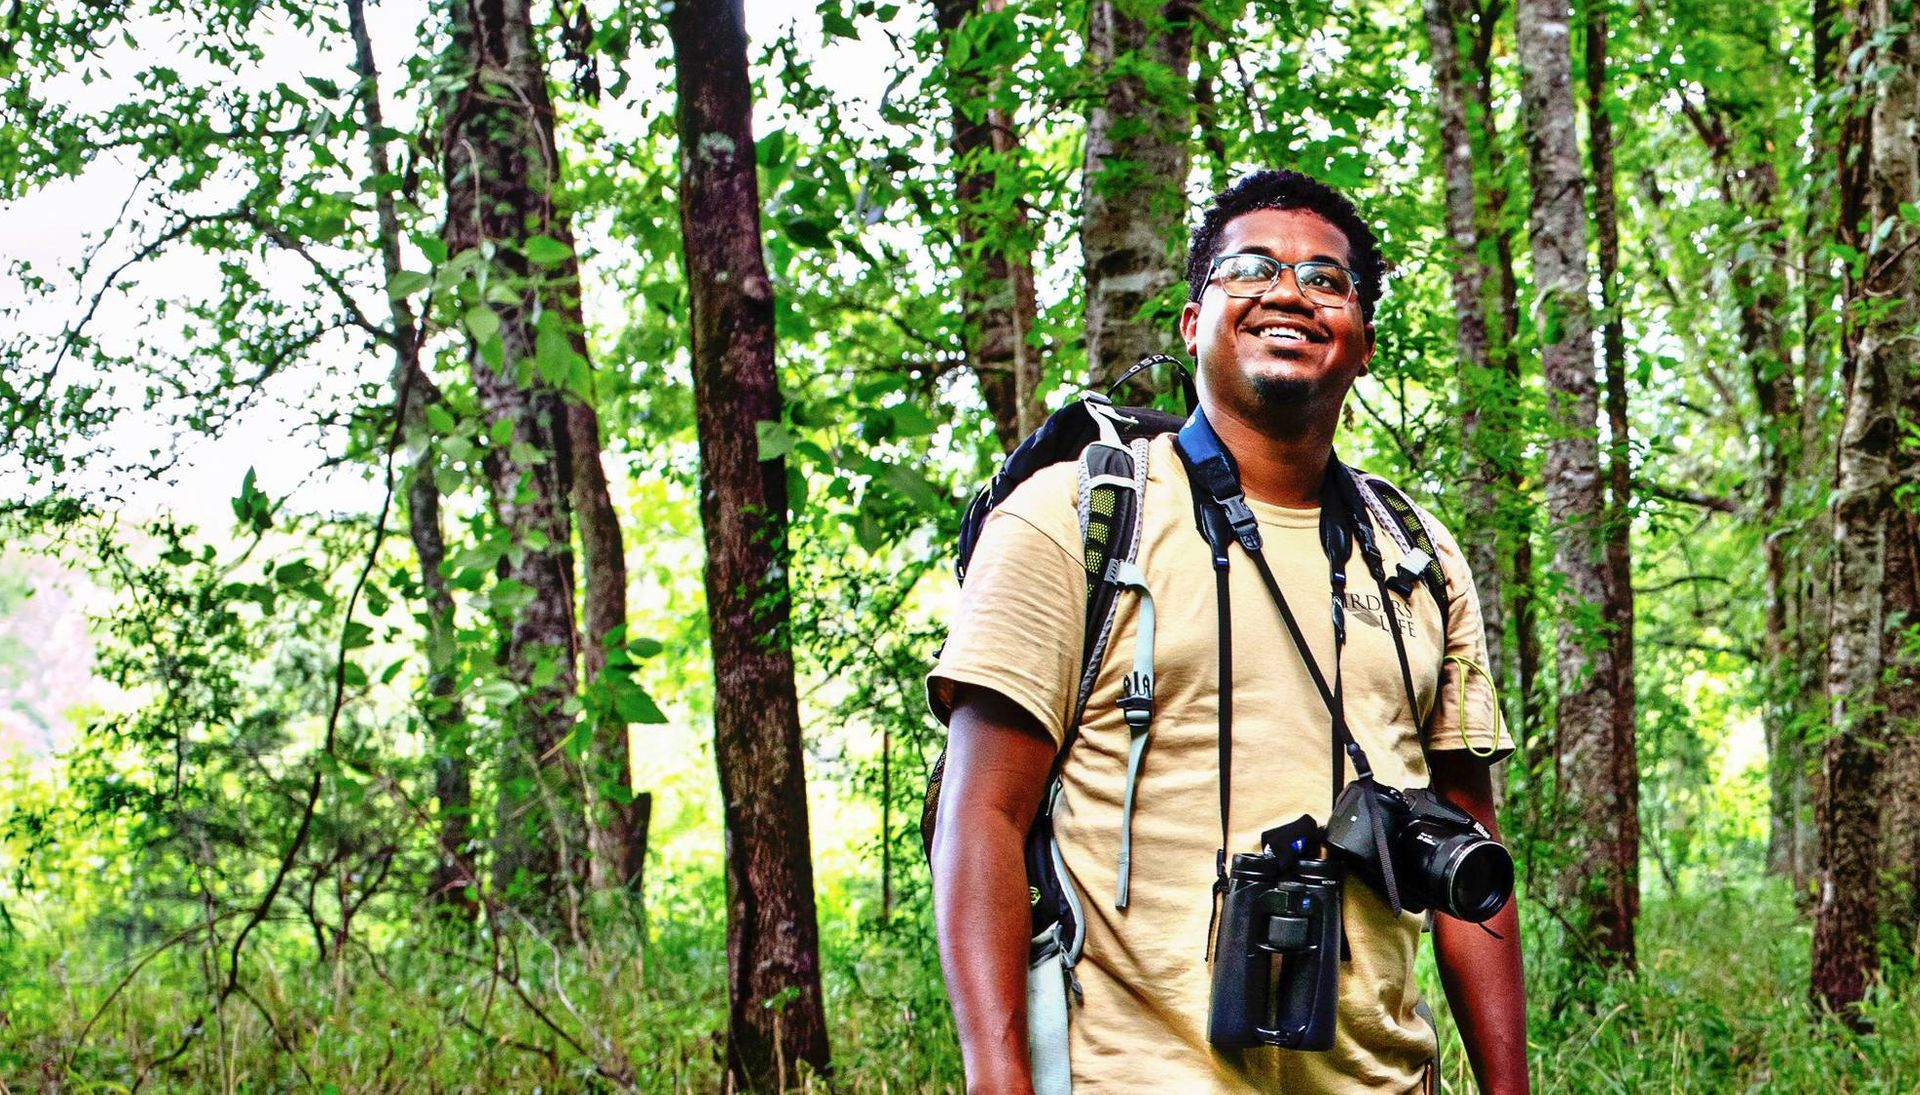 A birdwatcher stands in the woods and smiles. Rewire Our Future PBS Birding